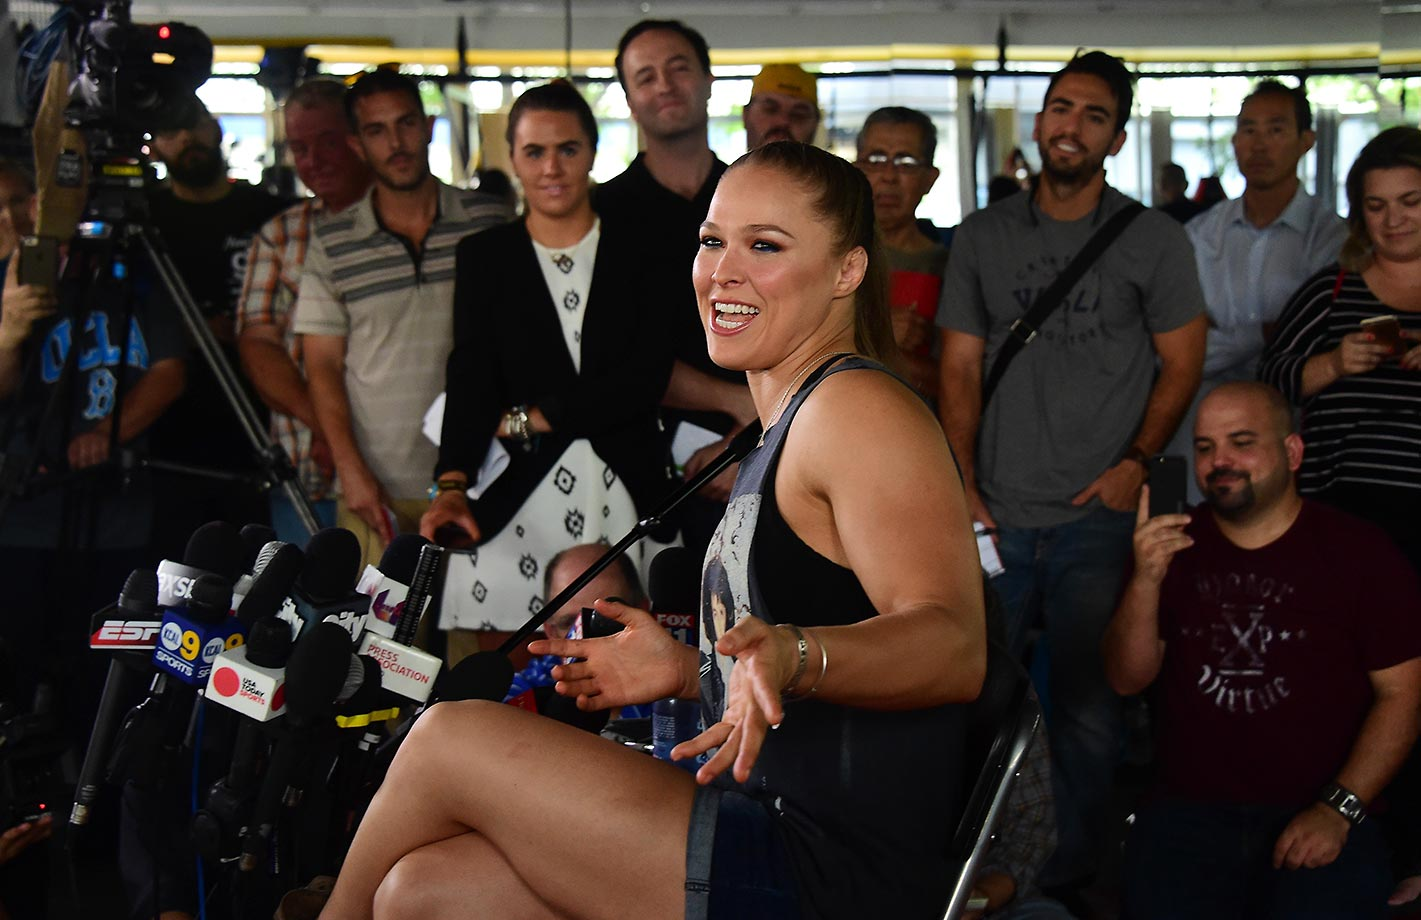 Ronda Rousey responds to questions during media day in Glendale, Calif., ahead of her showdown with Holly Holm.